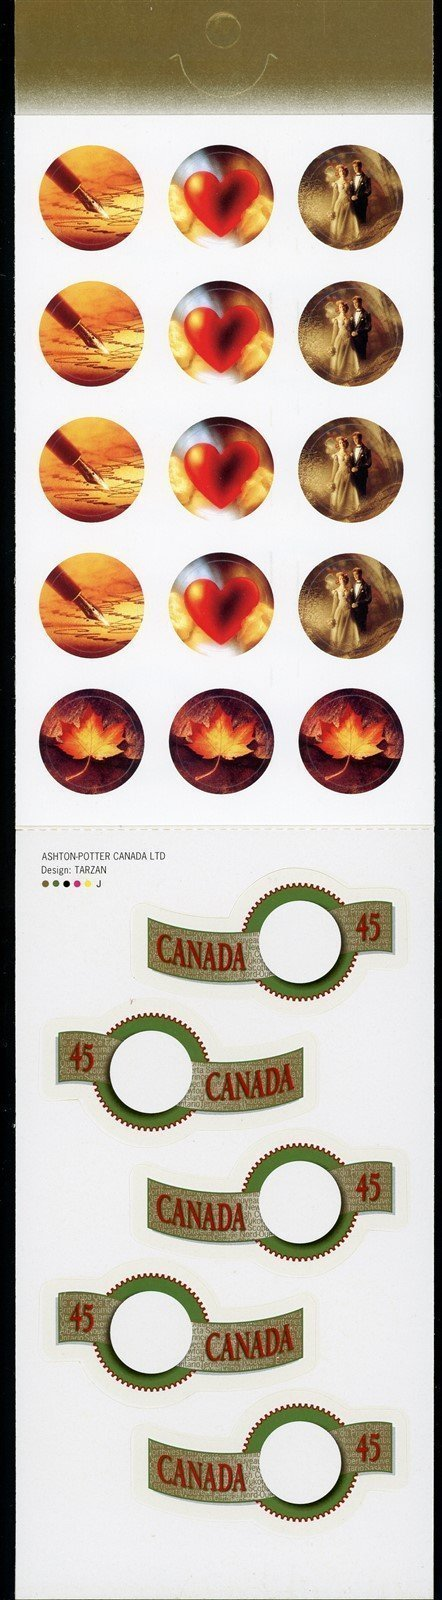 Canada Scott #1569a SA BOOKLET COMPLETE Greeting Stamps 10x45c + 15 LABELS CV$9+